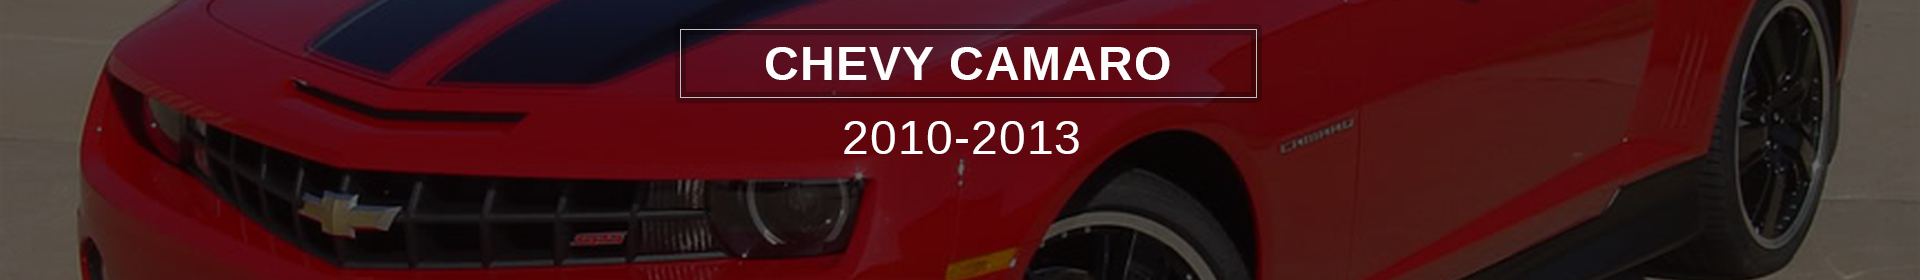 category-page-headers-camaro-2010-01.png